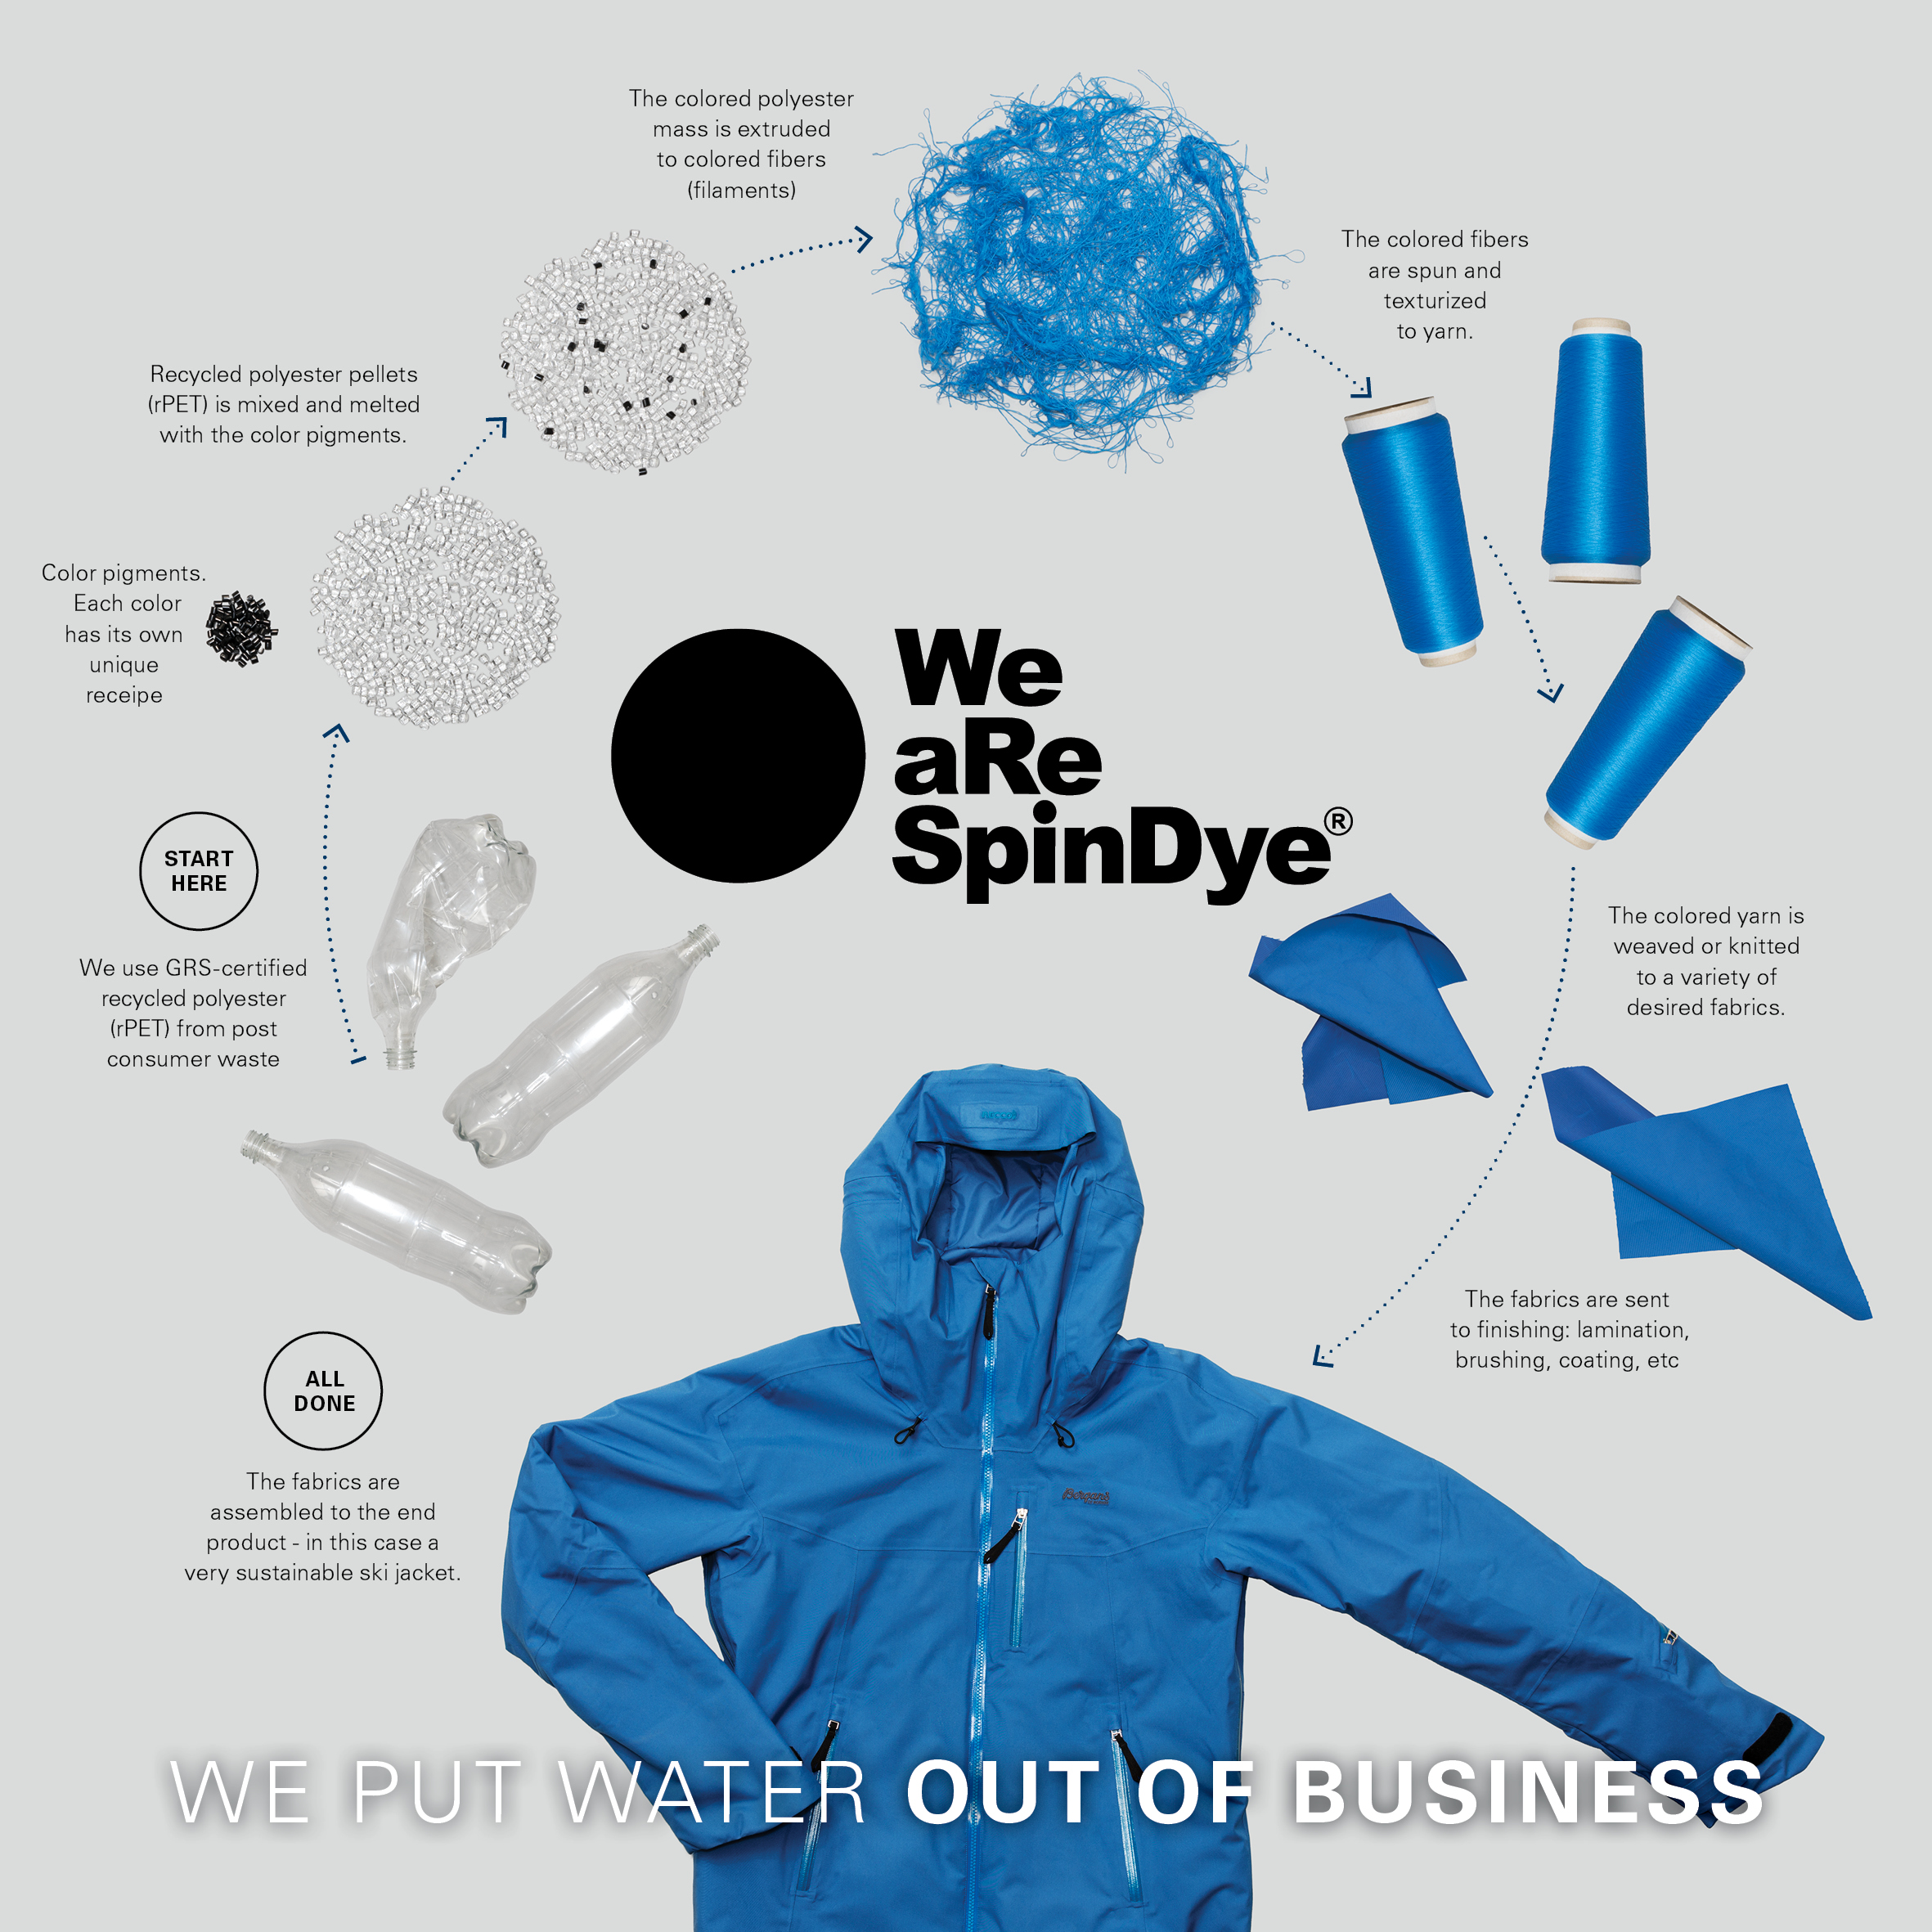 We aRe SpinDye